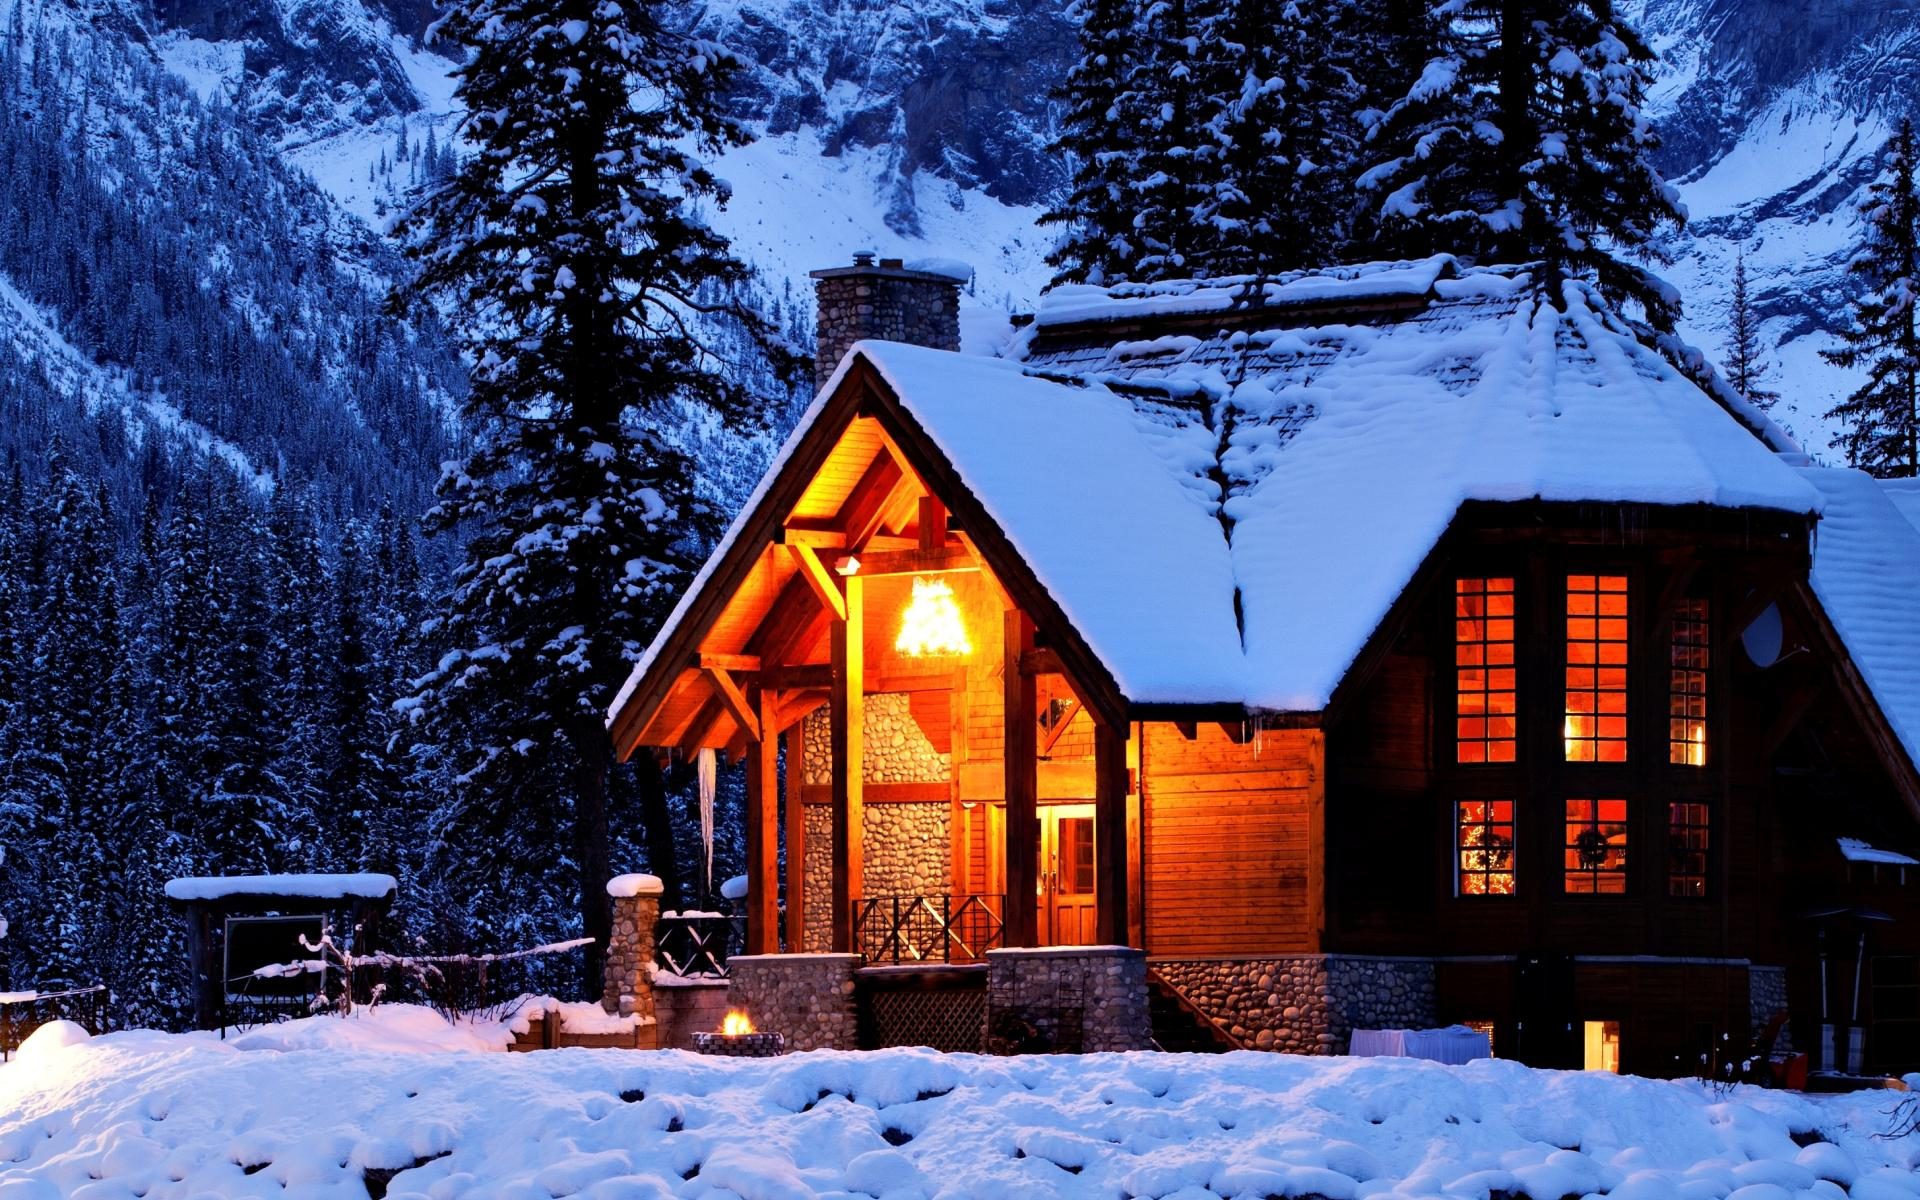 Tagged cabin mountains snow snowy cabins 1920x1200